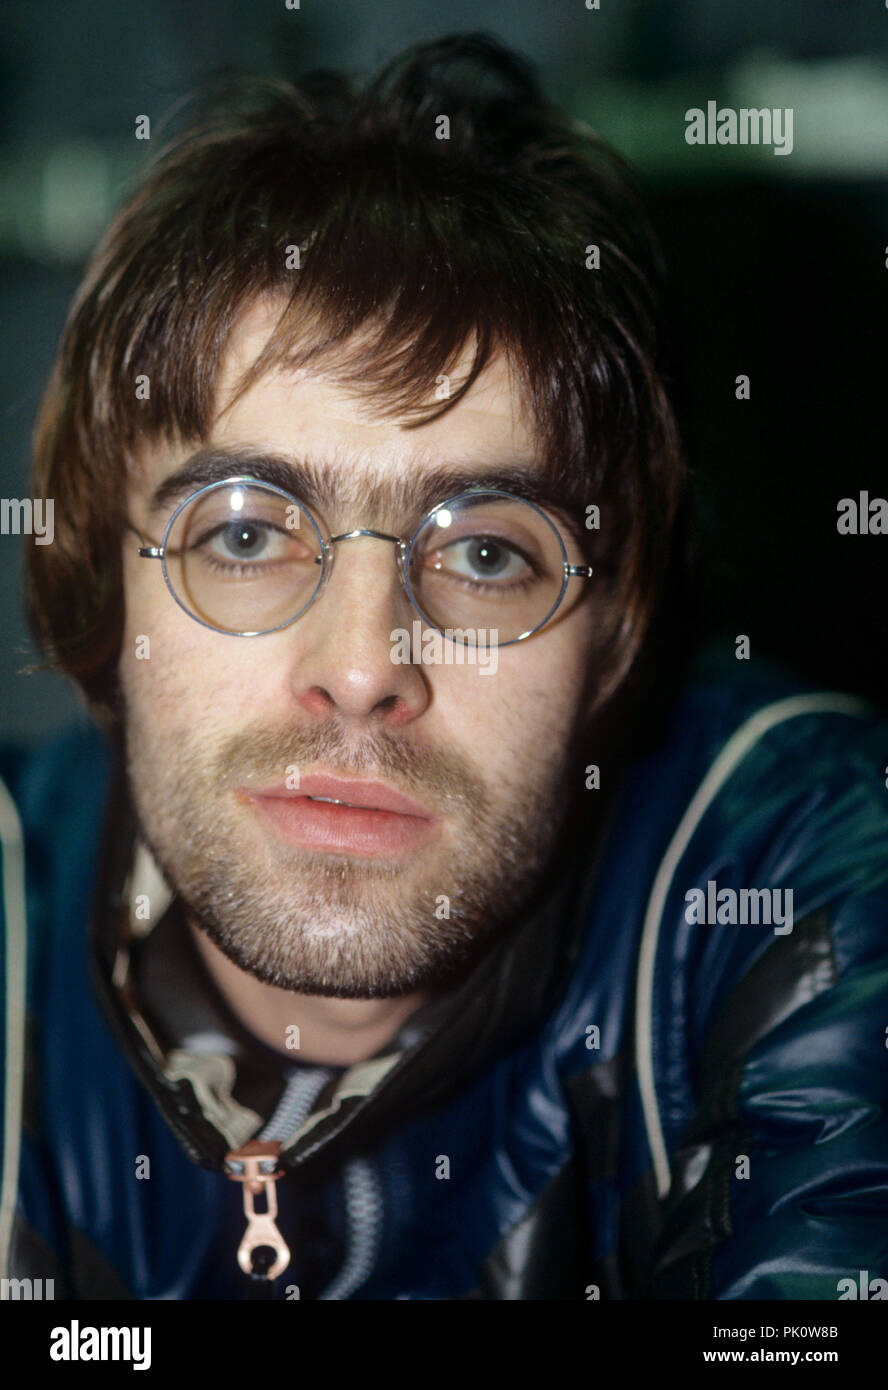 Liam Gallagher (Oasis) on 12.01.1996 in München / Munich. | usage worldwide - Stock Image